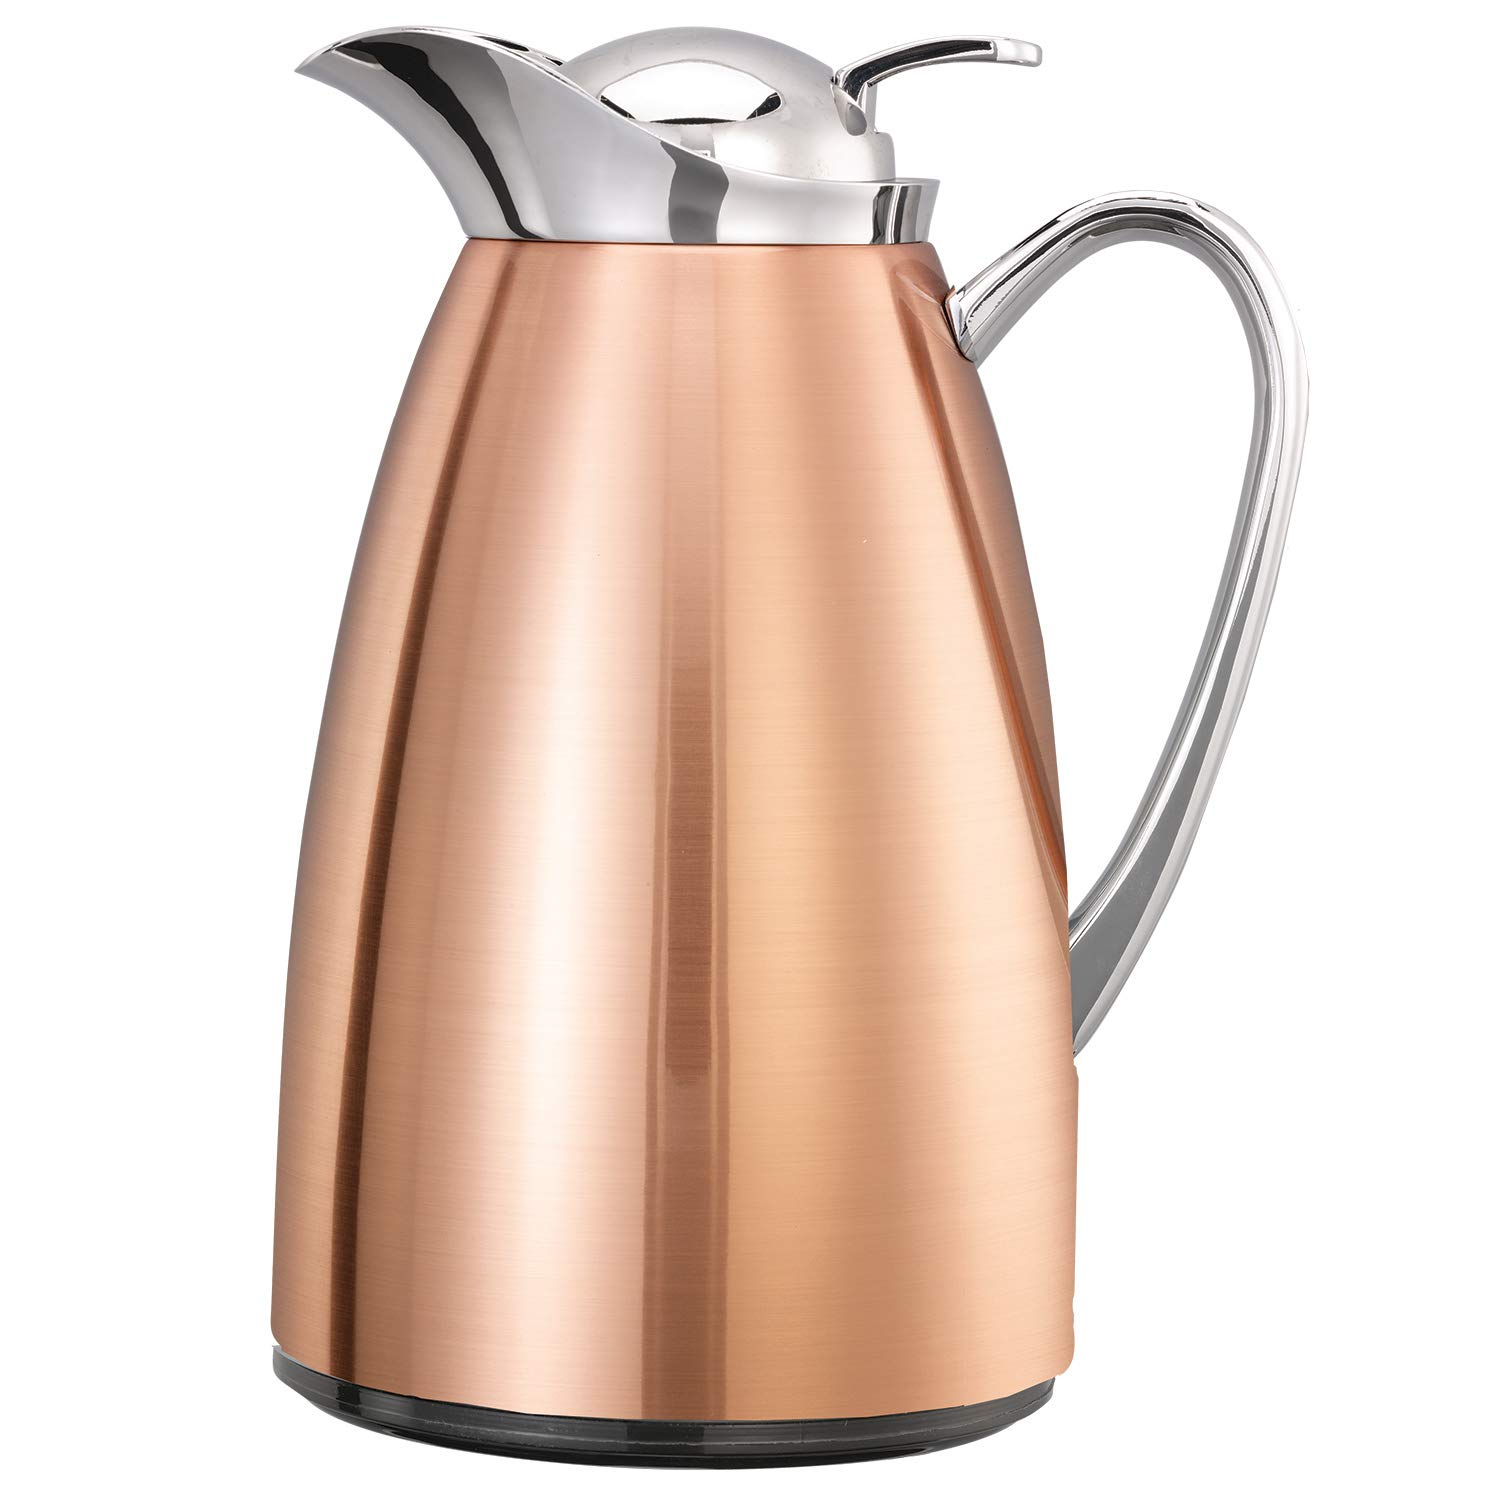 Service Ideas CJZS6CP Classy Carafe Popular standard Lined Copper fin Popular Stainless